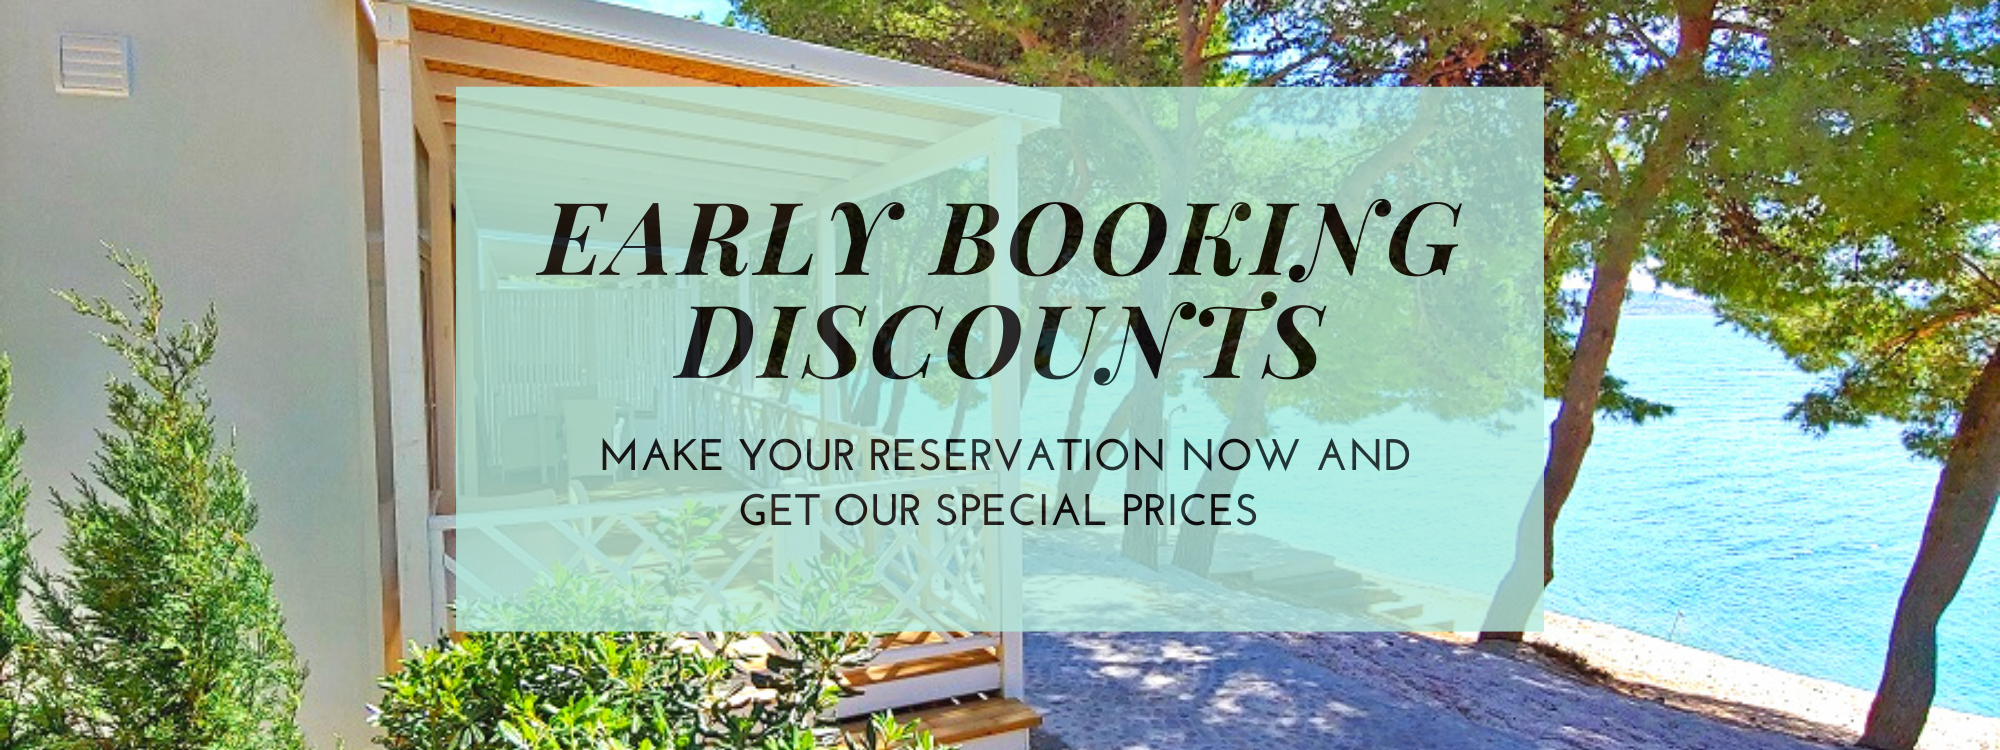 early-booking-discounts